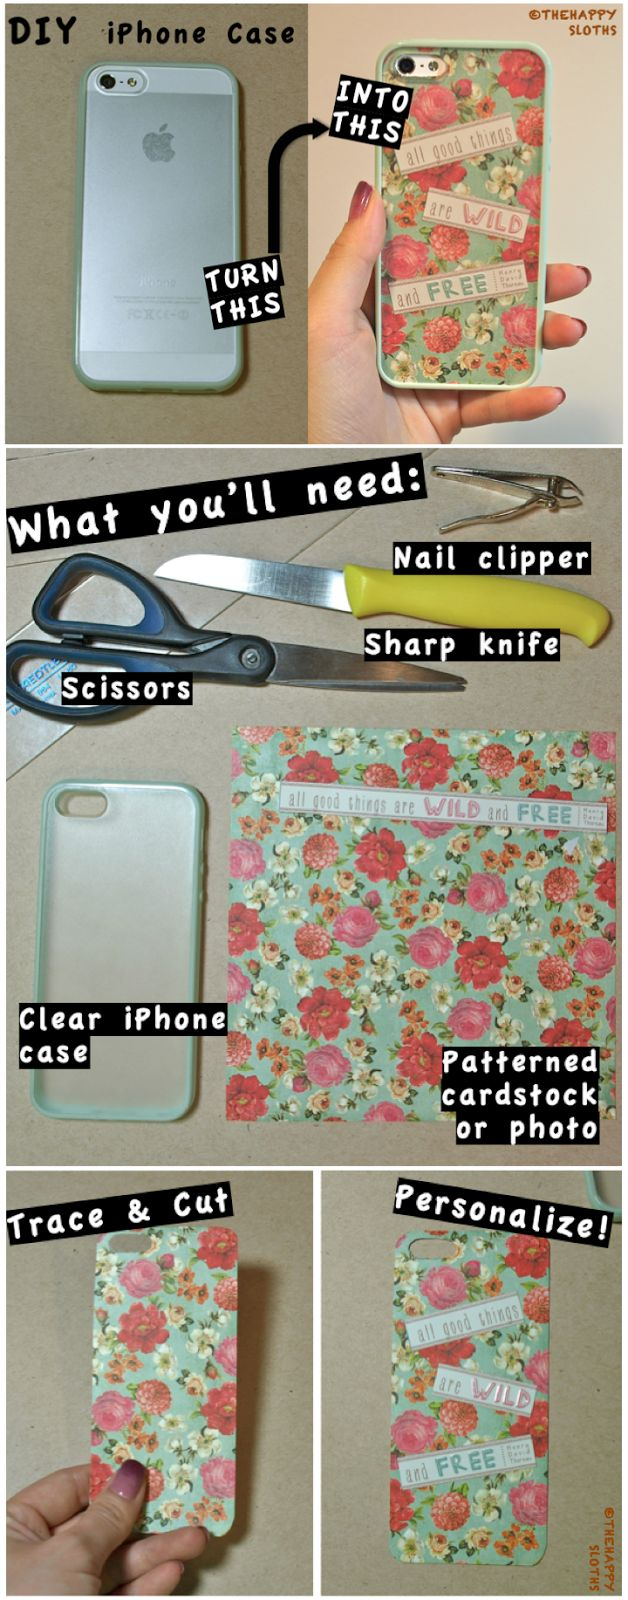 DIY iPhone Case, this would work with any clear phone case and its just too cute I WISH I HAD AN IPHONE TO DO THIS WITH! DO U THINK U COULD DO IT WITH A BLACKBERRY??